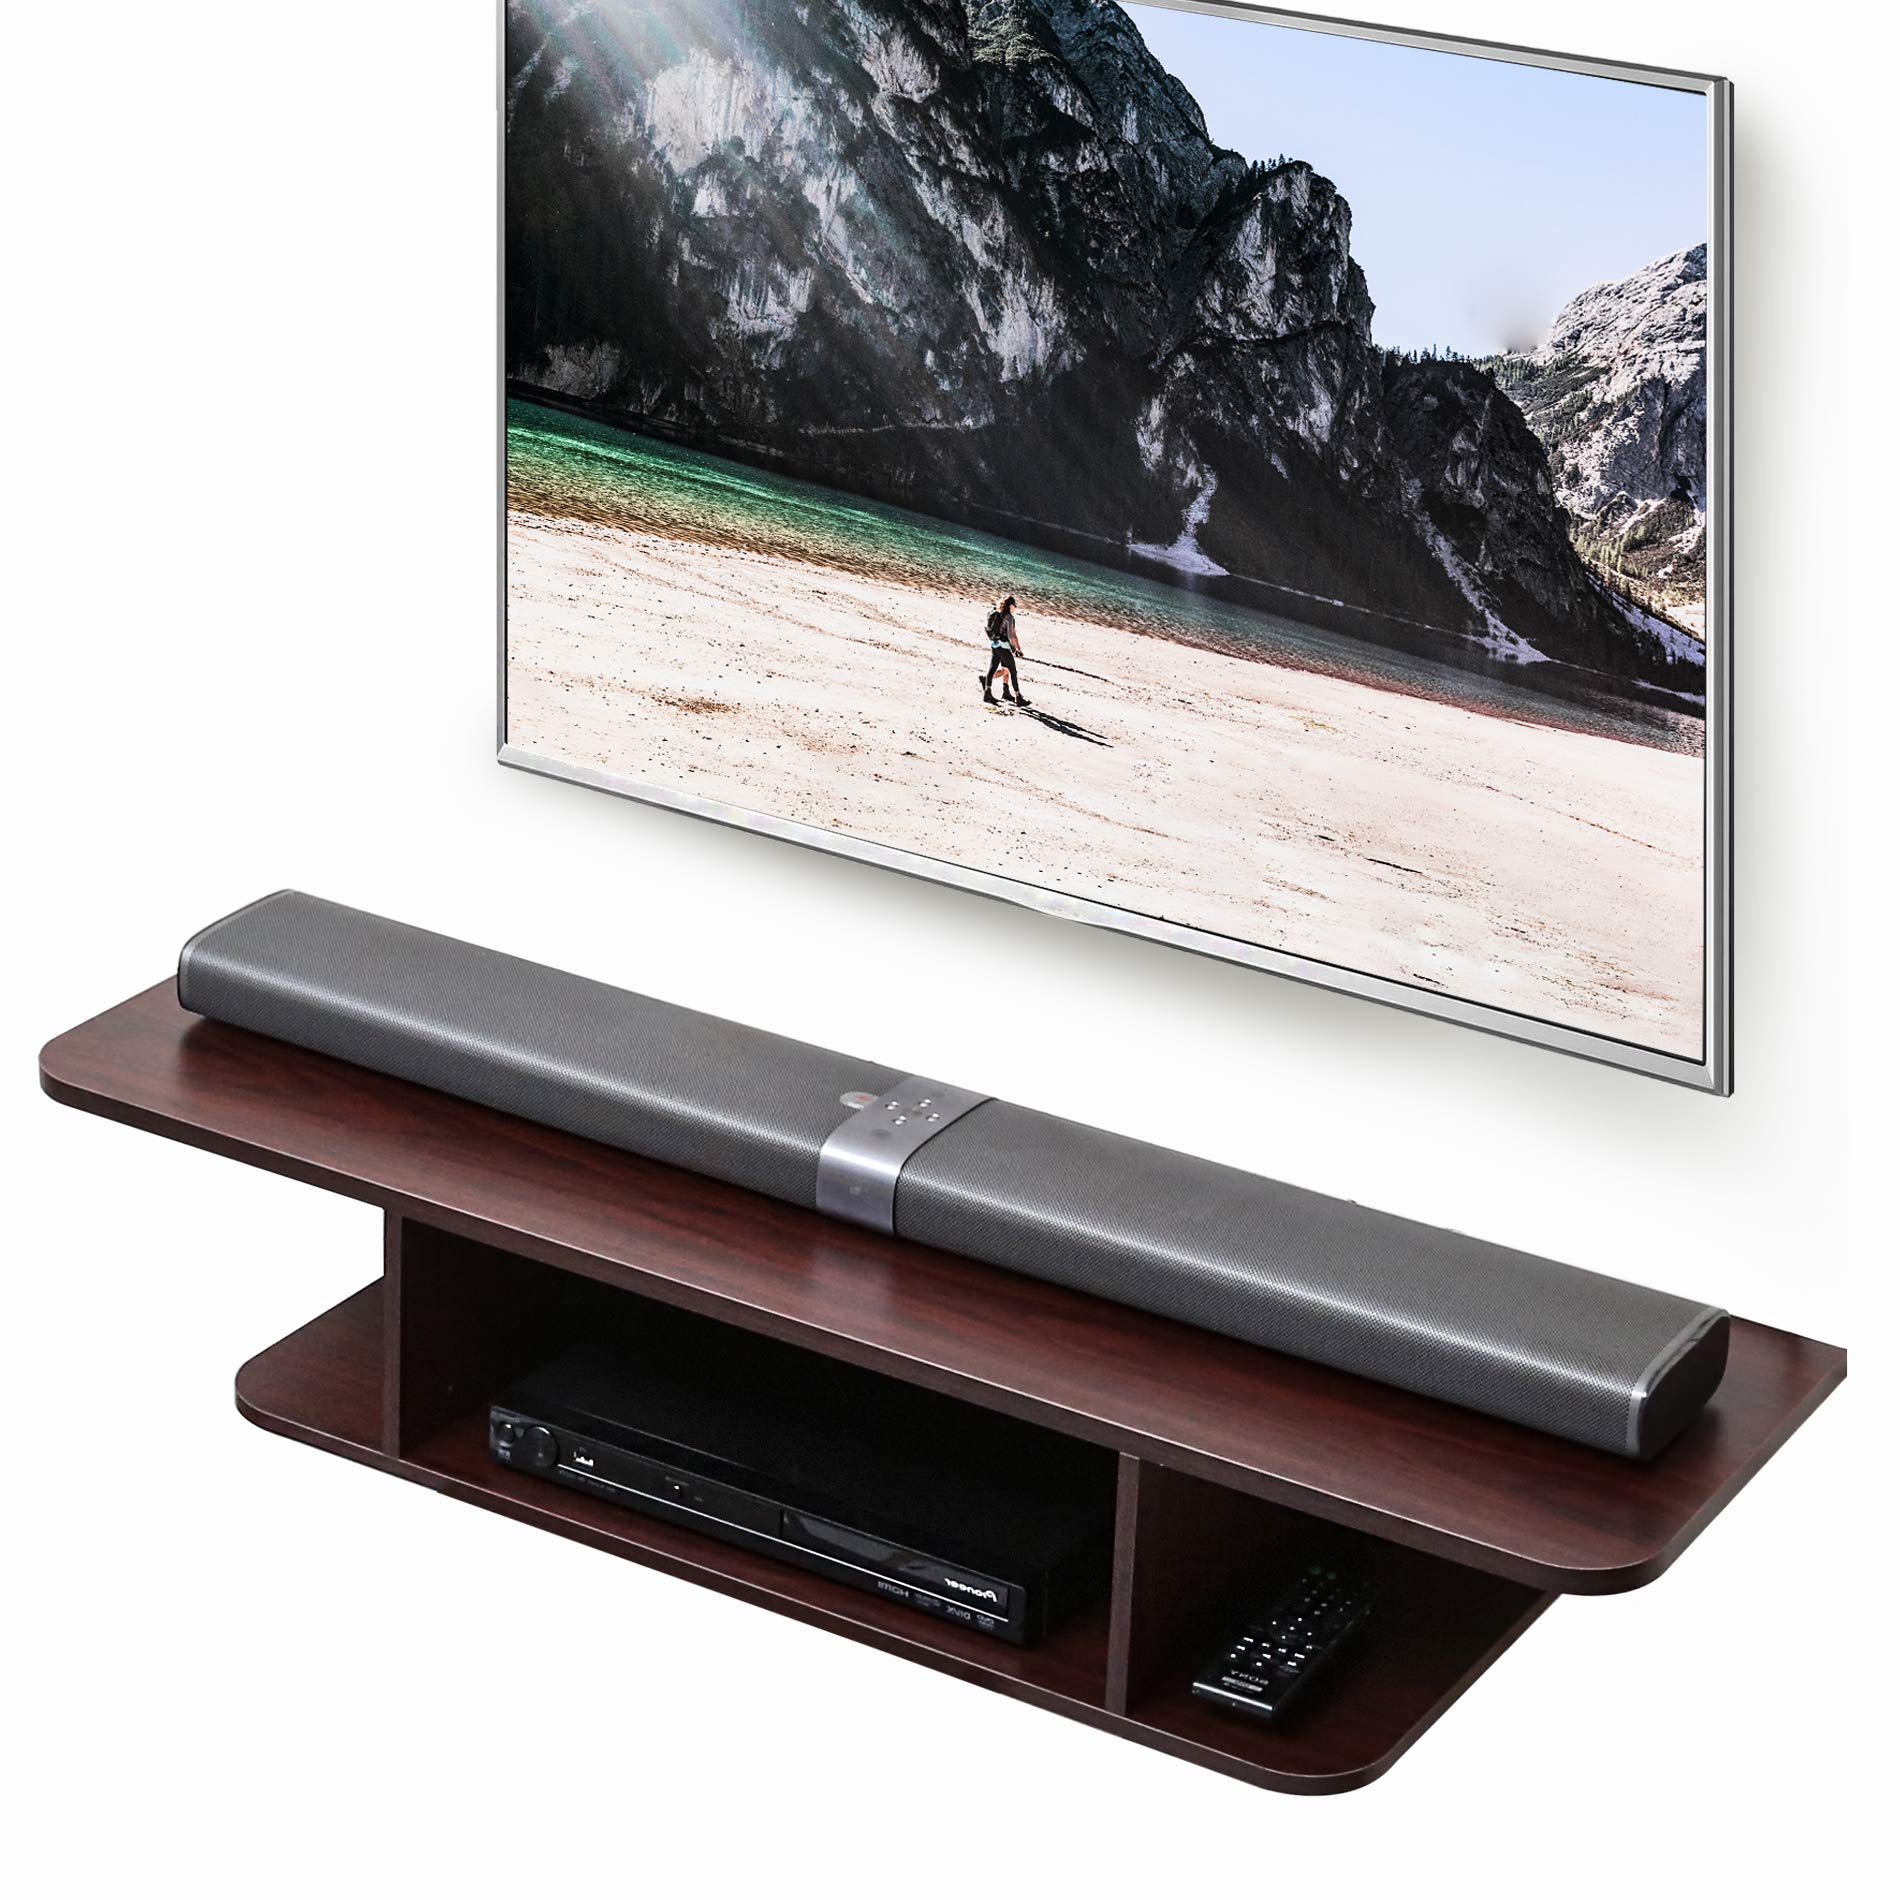 FITUEYES Wall Mounted Media Console,Floating TV Stand Component Shelf,Brown ,DS210502WW